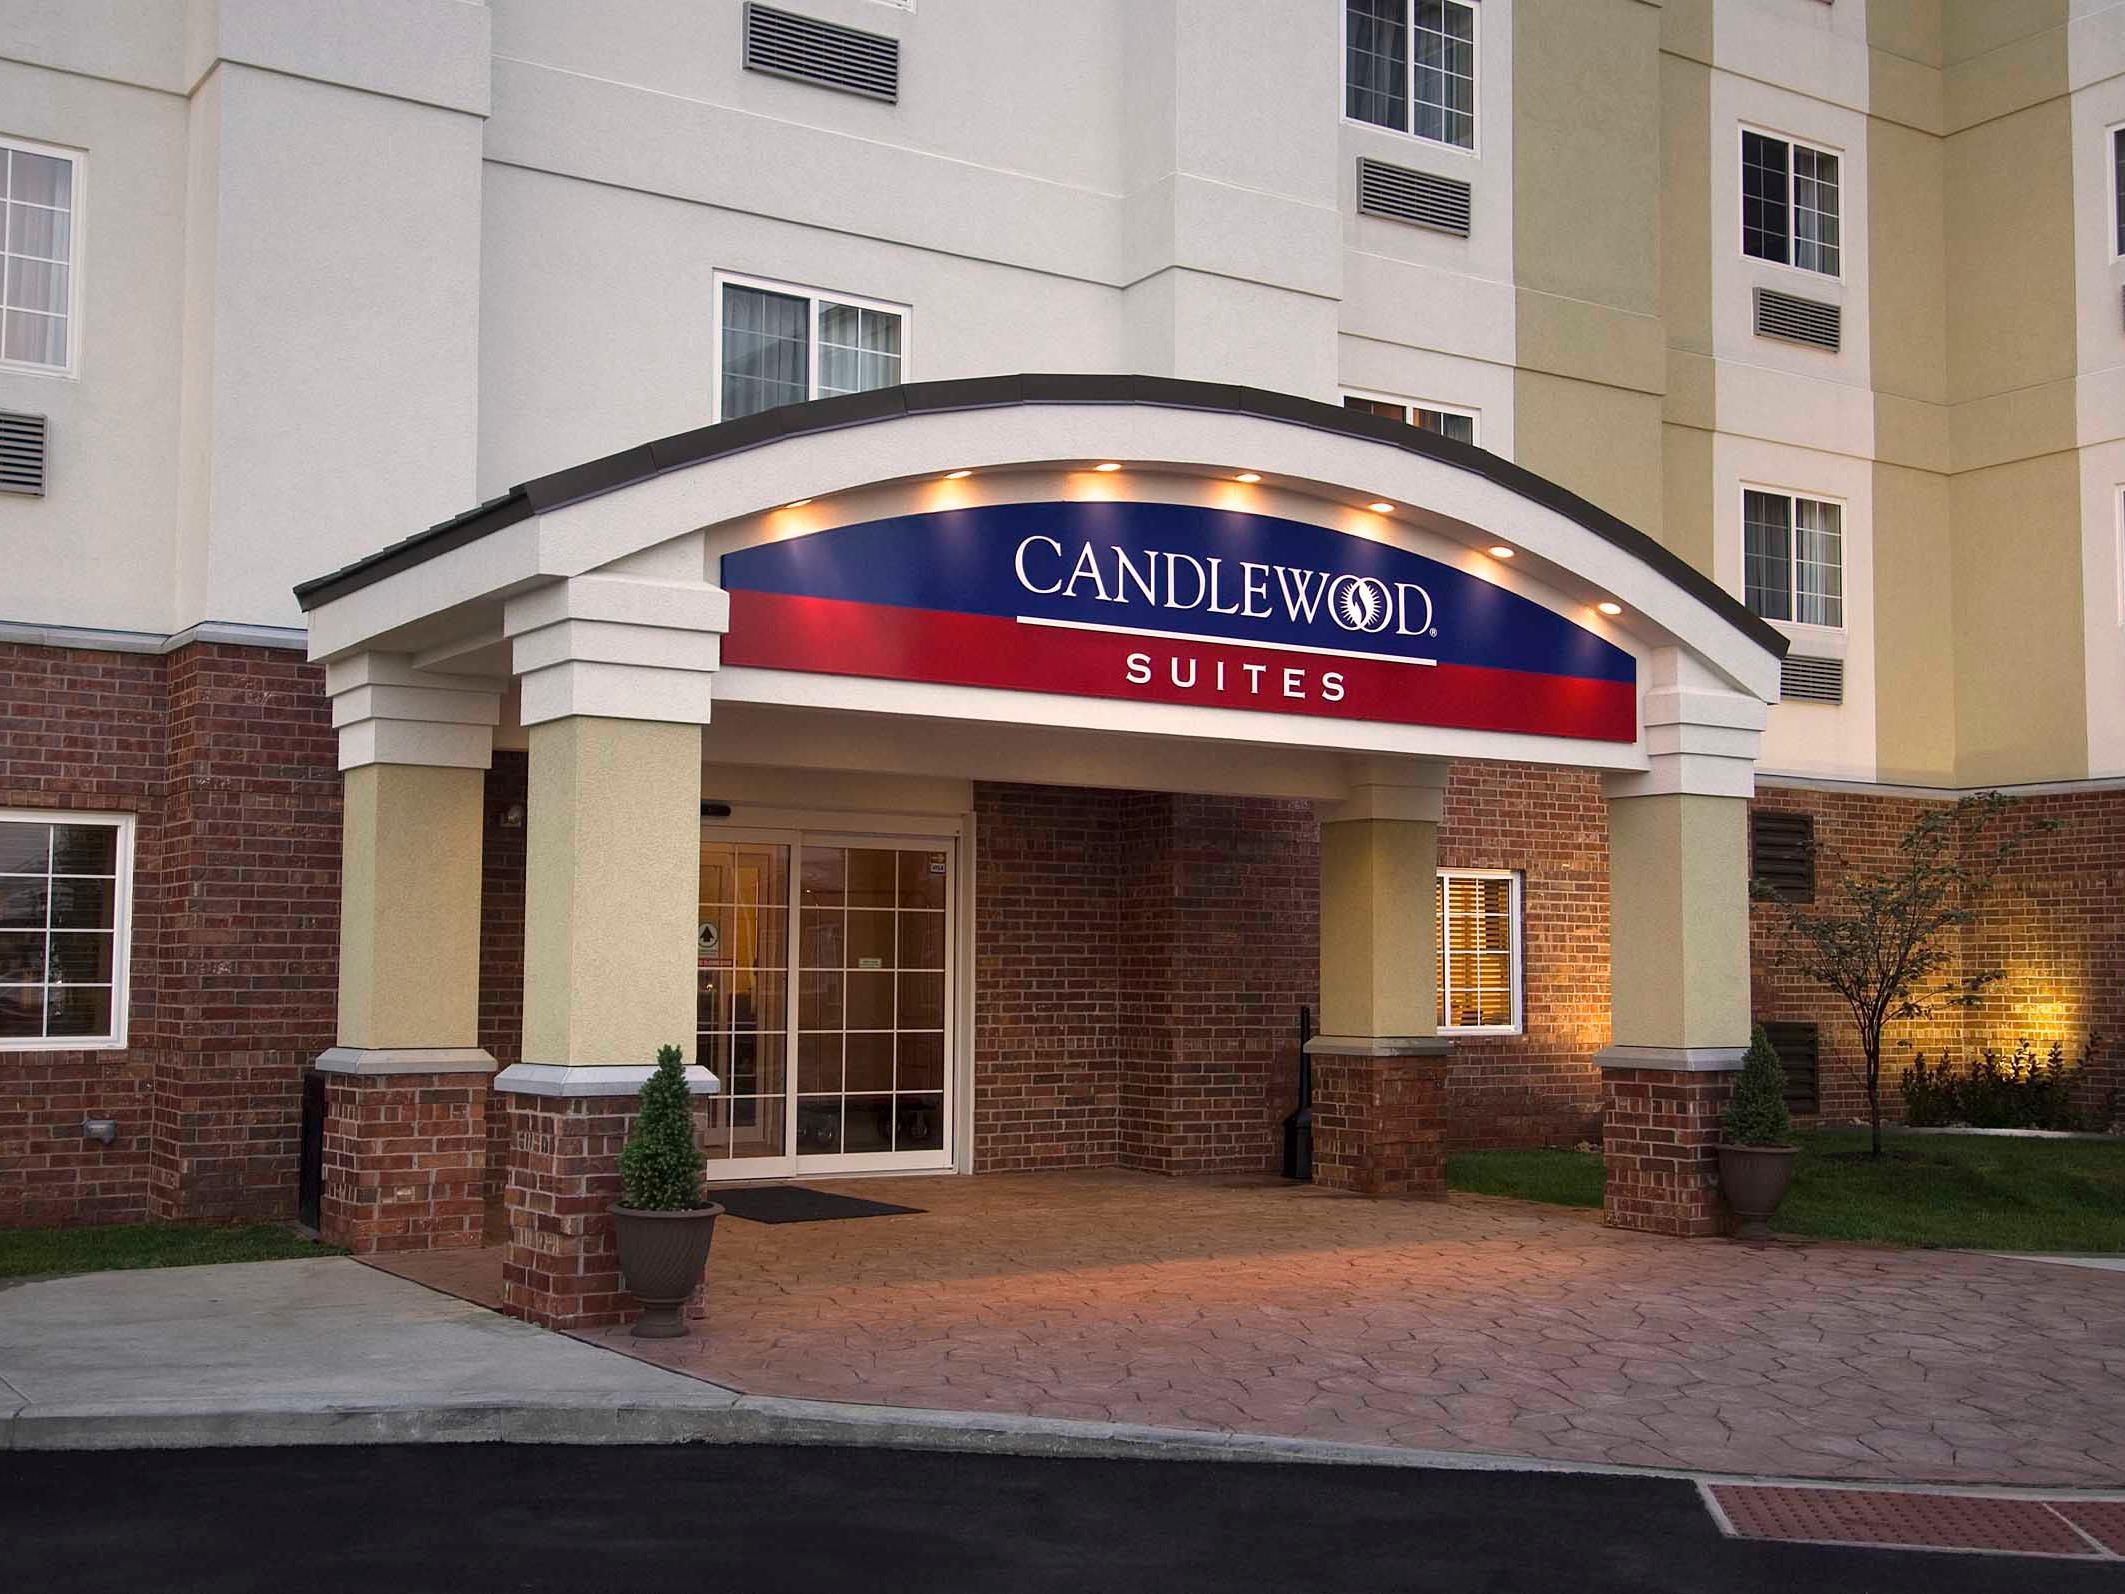 lafayette hotels candlewood suites lafayette extended. Black Bedroom Furniture Sets. Home Design Ideas